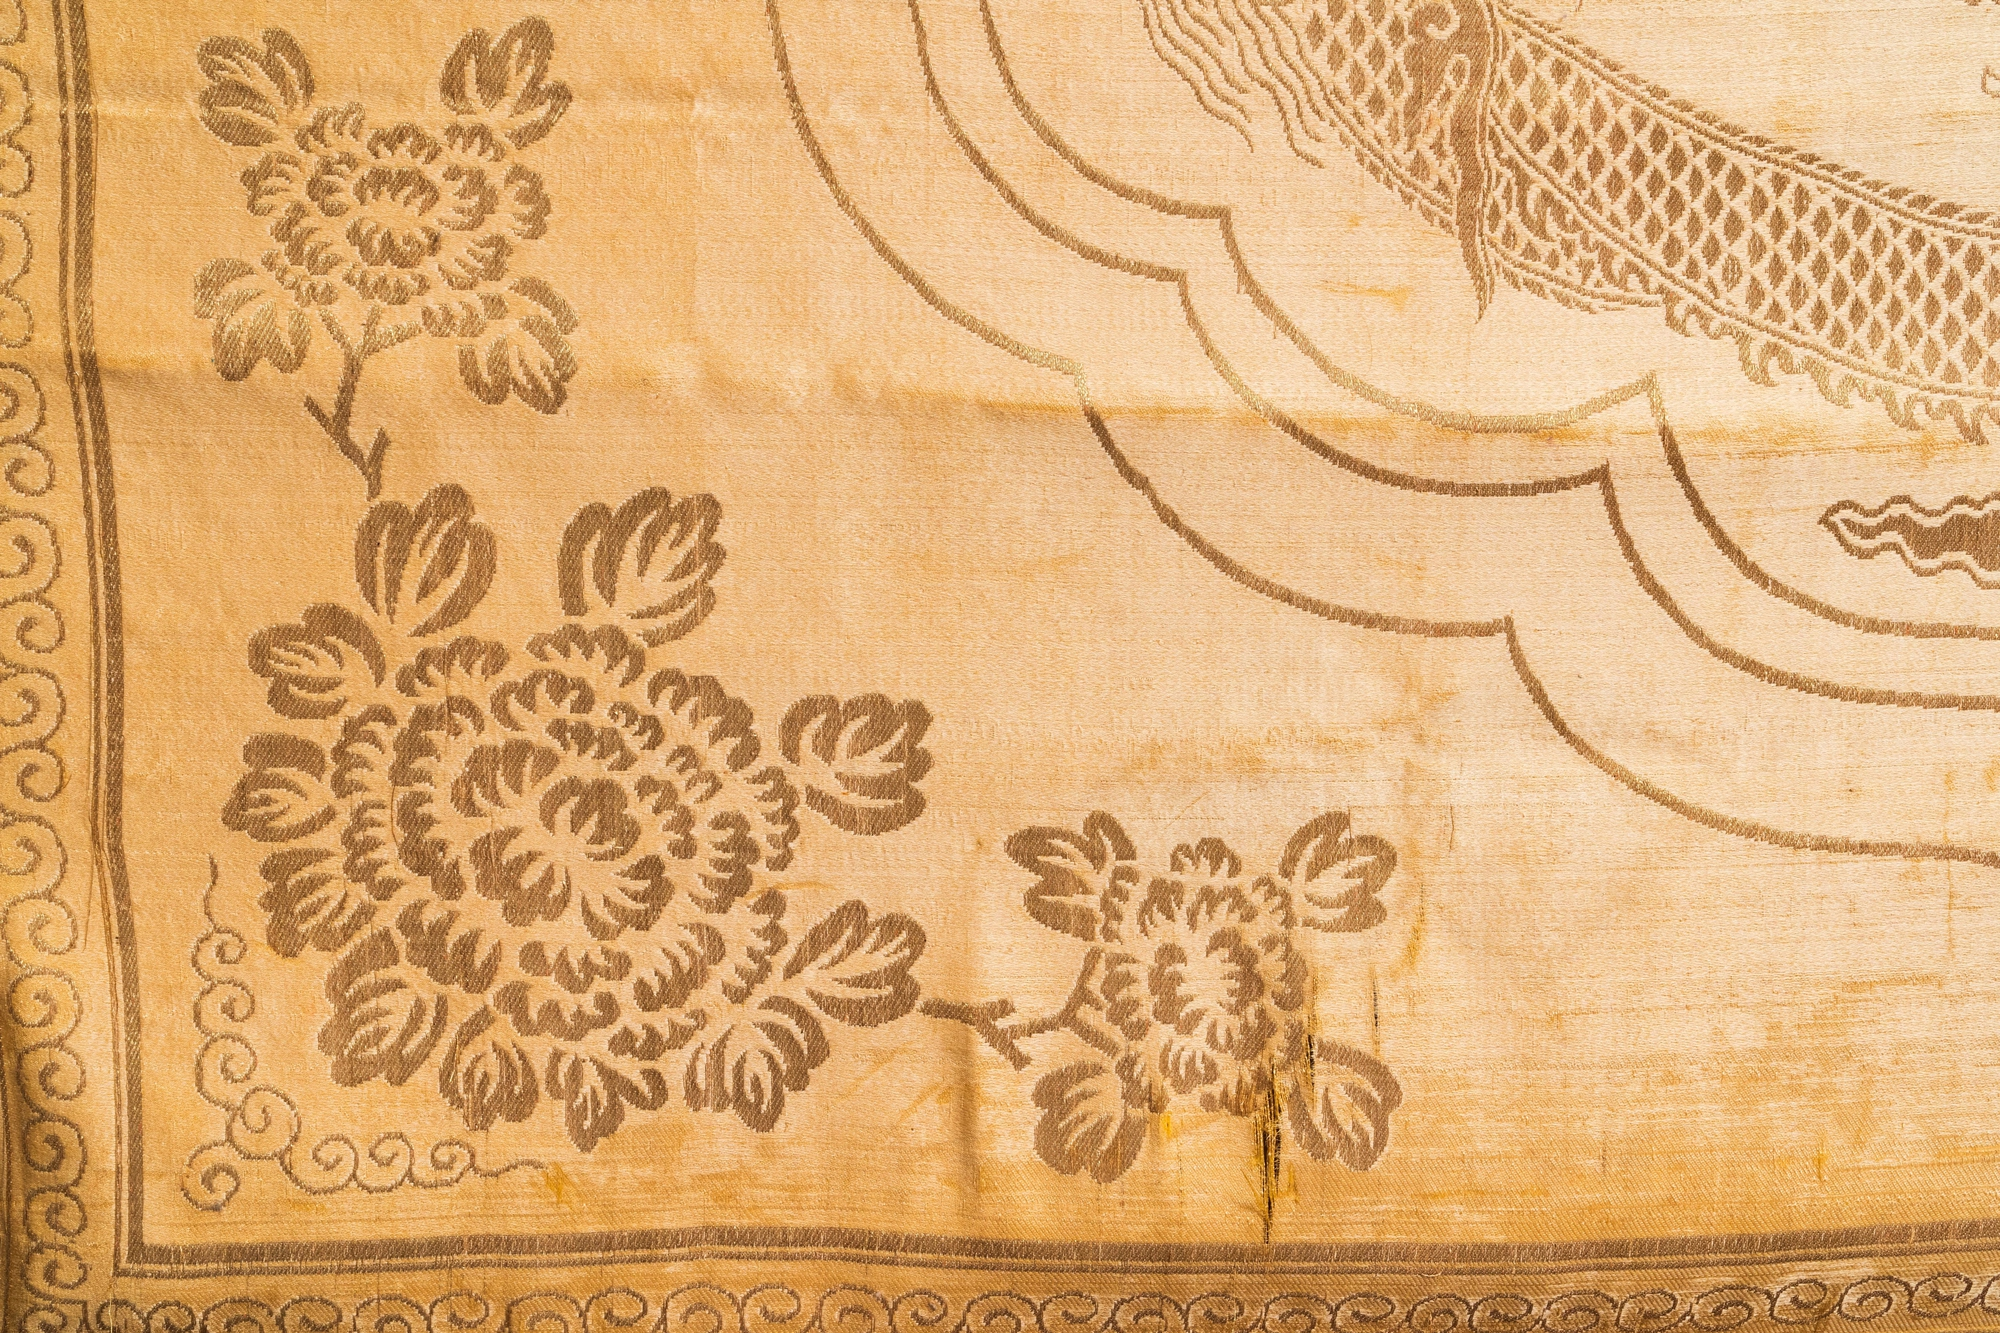 Three Chinese panels of embroidered silk, 19/20th C. - Image 11 of 17